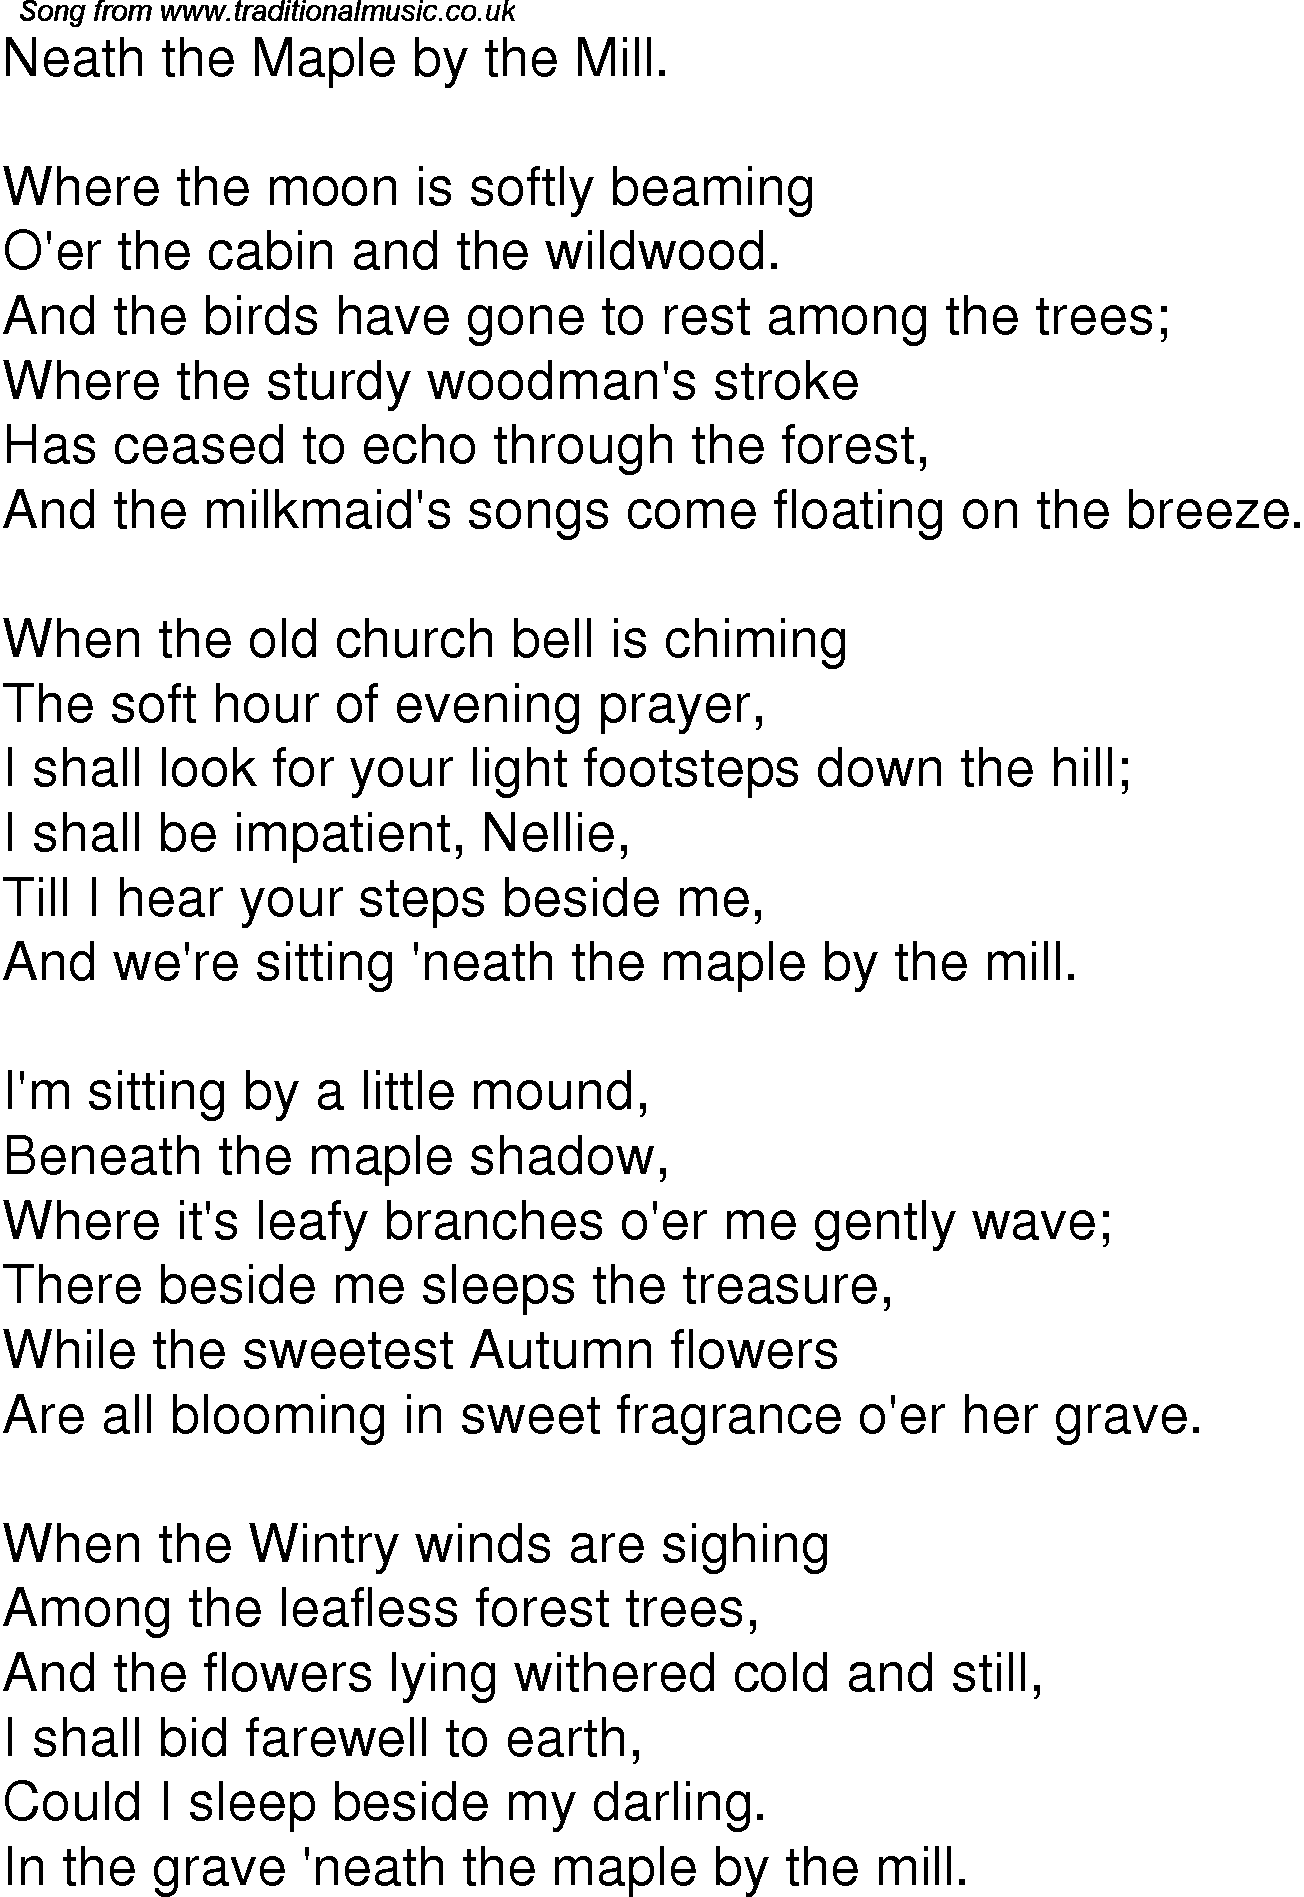 Old Time Song Lyrics for 08 Neath The Maple By The Mill